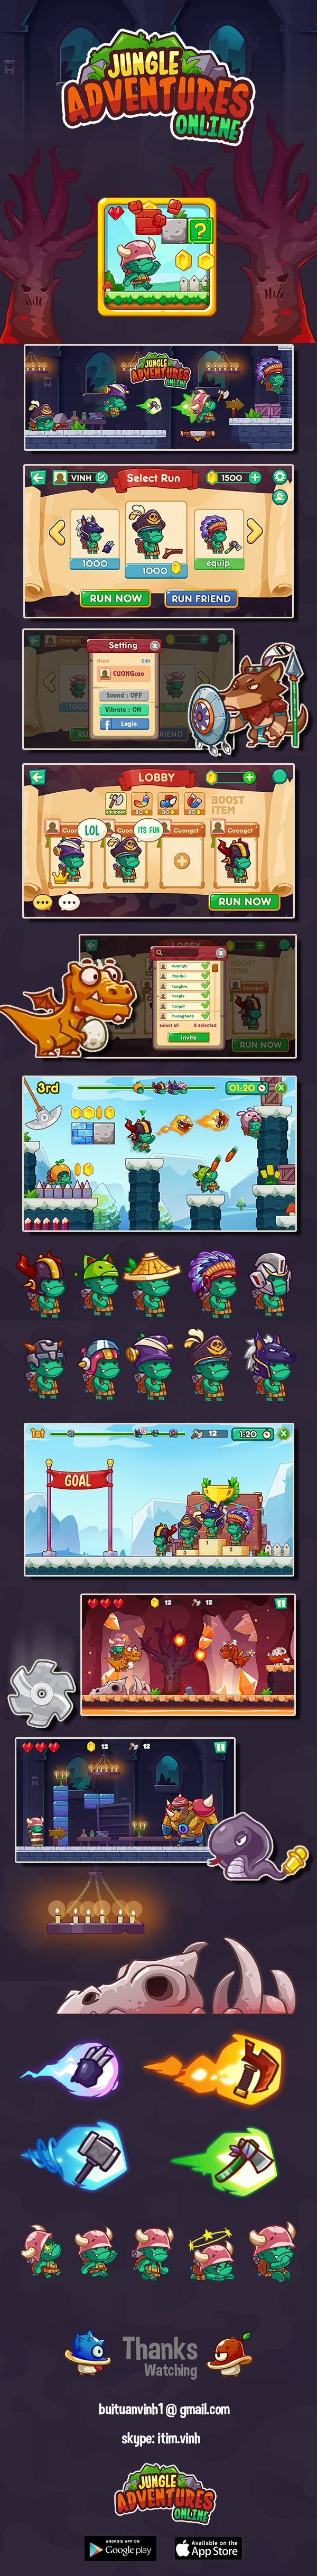 This is my project i made when i worked in fatcat teamGameplay similar mario bros with funny graphics and colorfulThis game available in google storehttps://play.google.com/store/apps/details?id=com.foxgames.jungle.adventuresHope you enjoy it